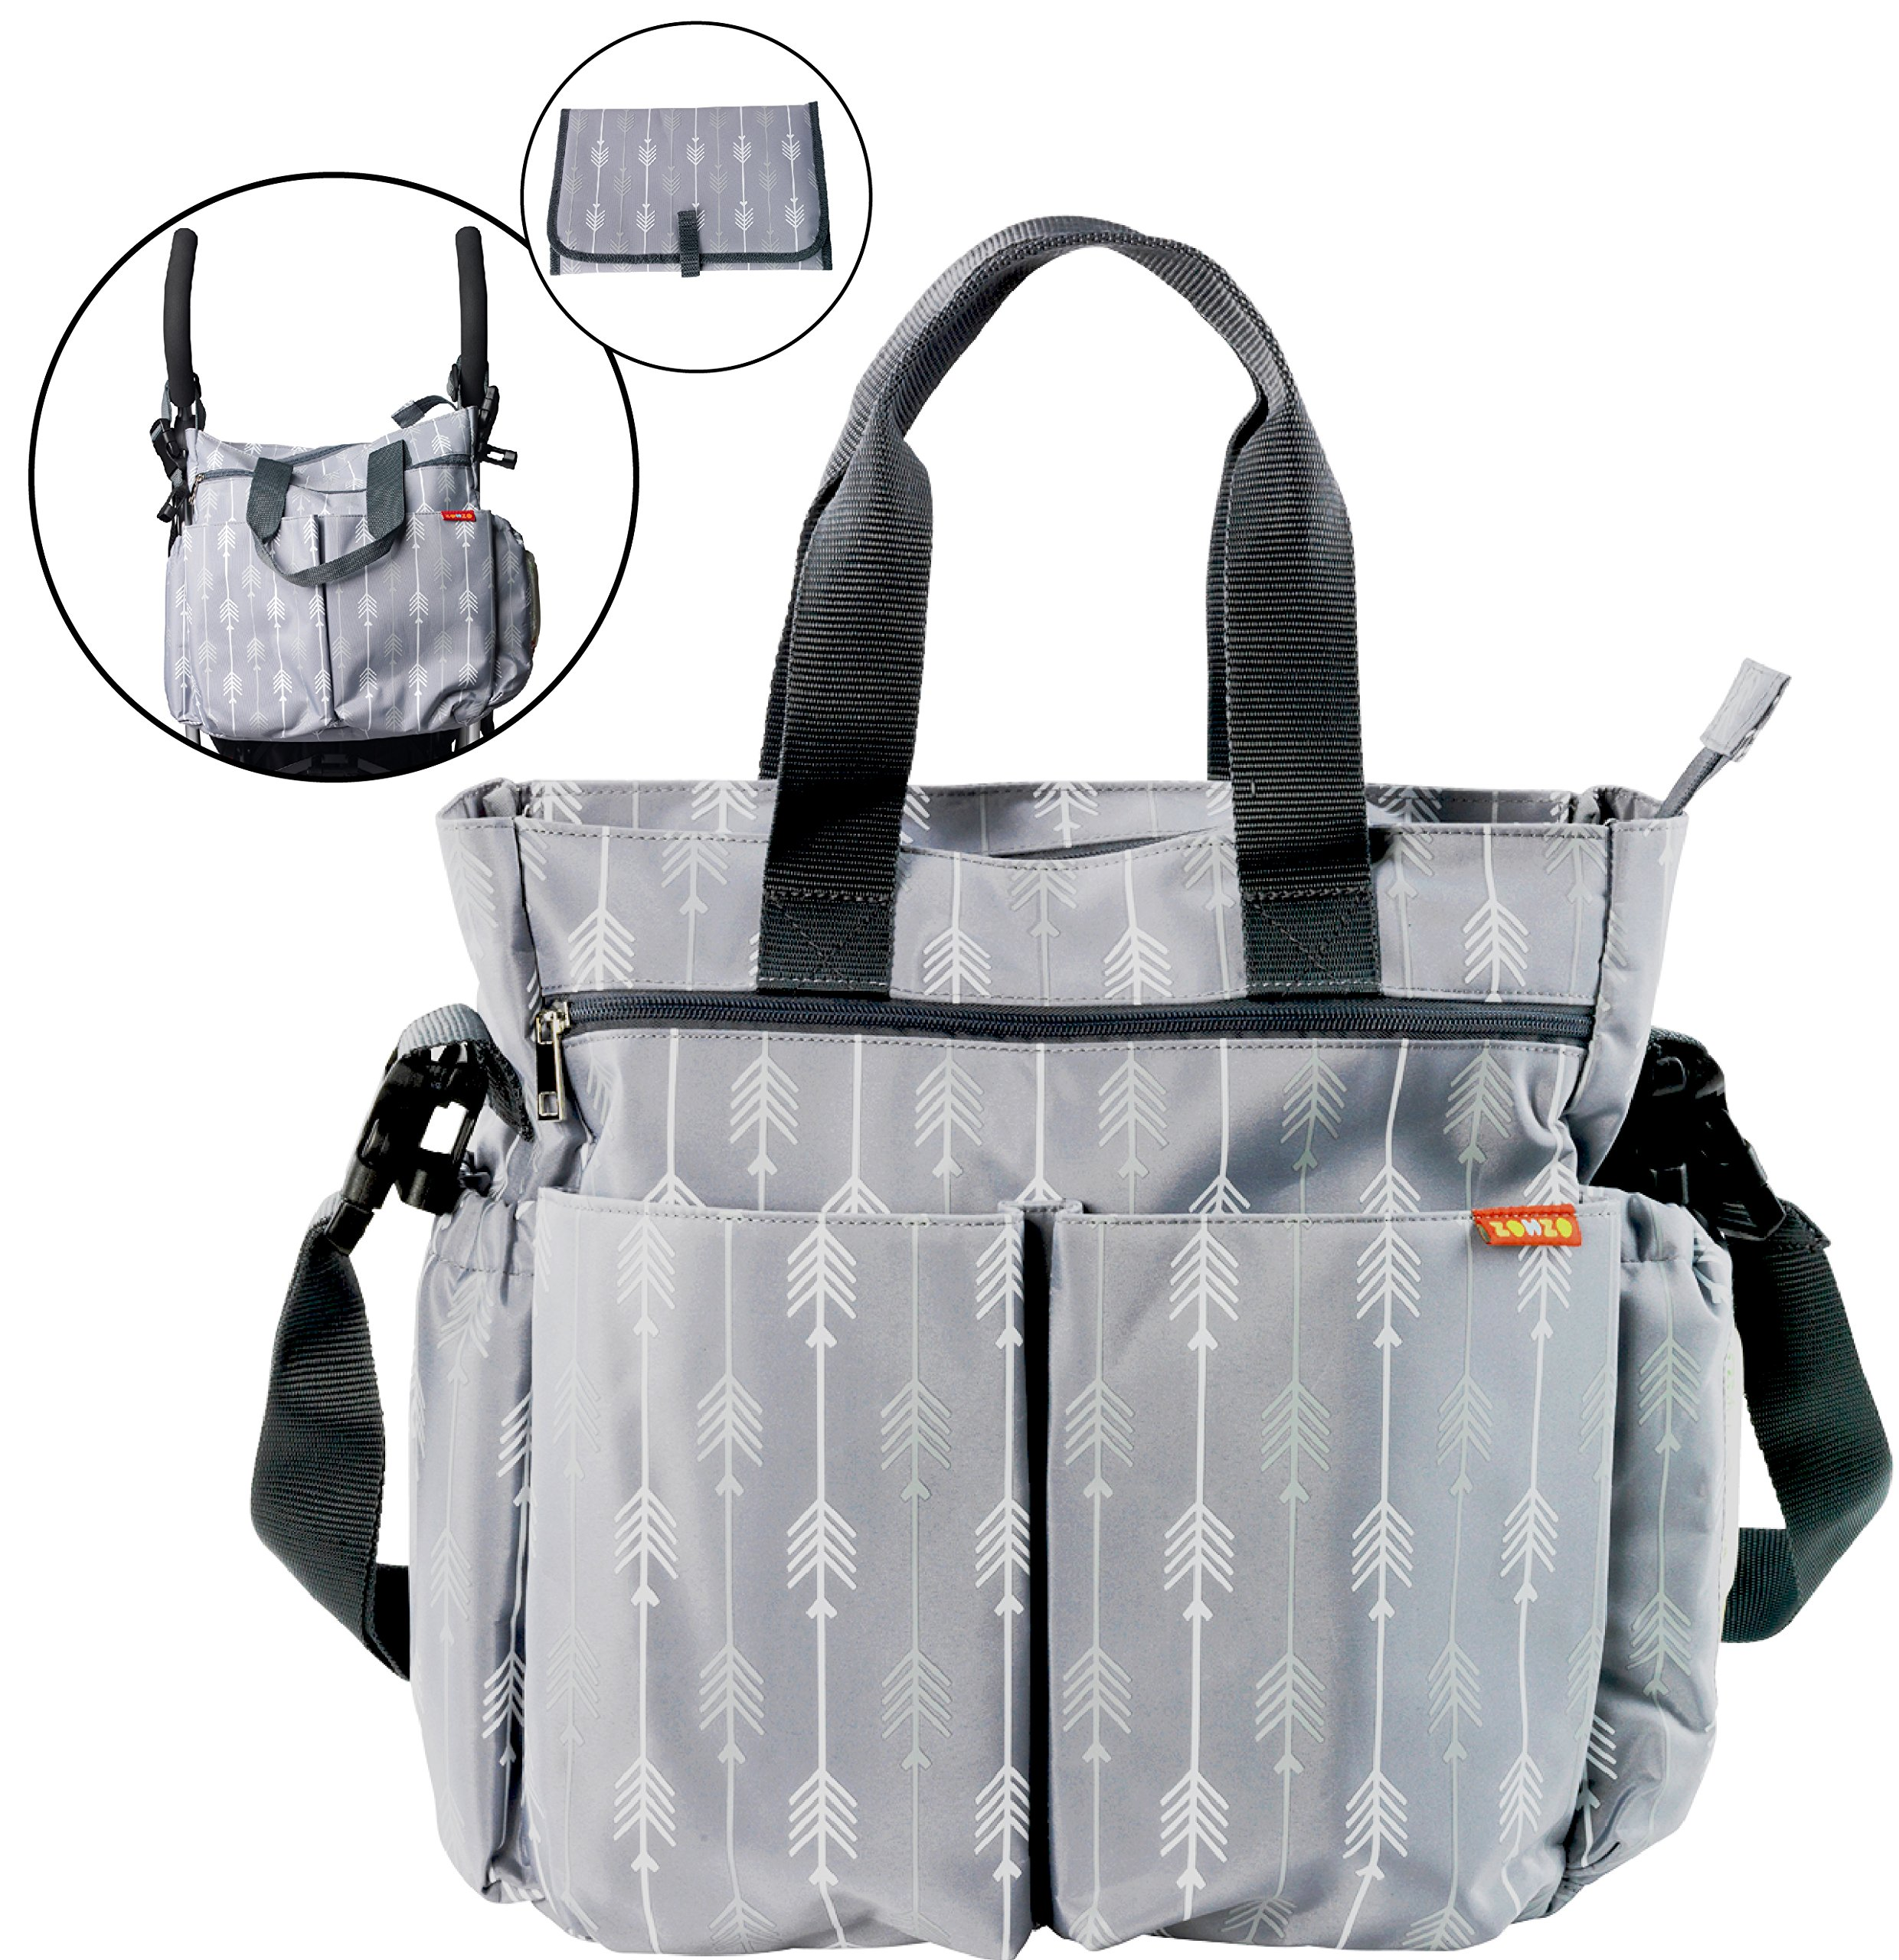 Diaper Bag for Baby By Zohzo - Diaper Tote Bag With Changing Pad, Insulated  Pockets 505e25d31d